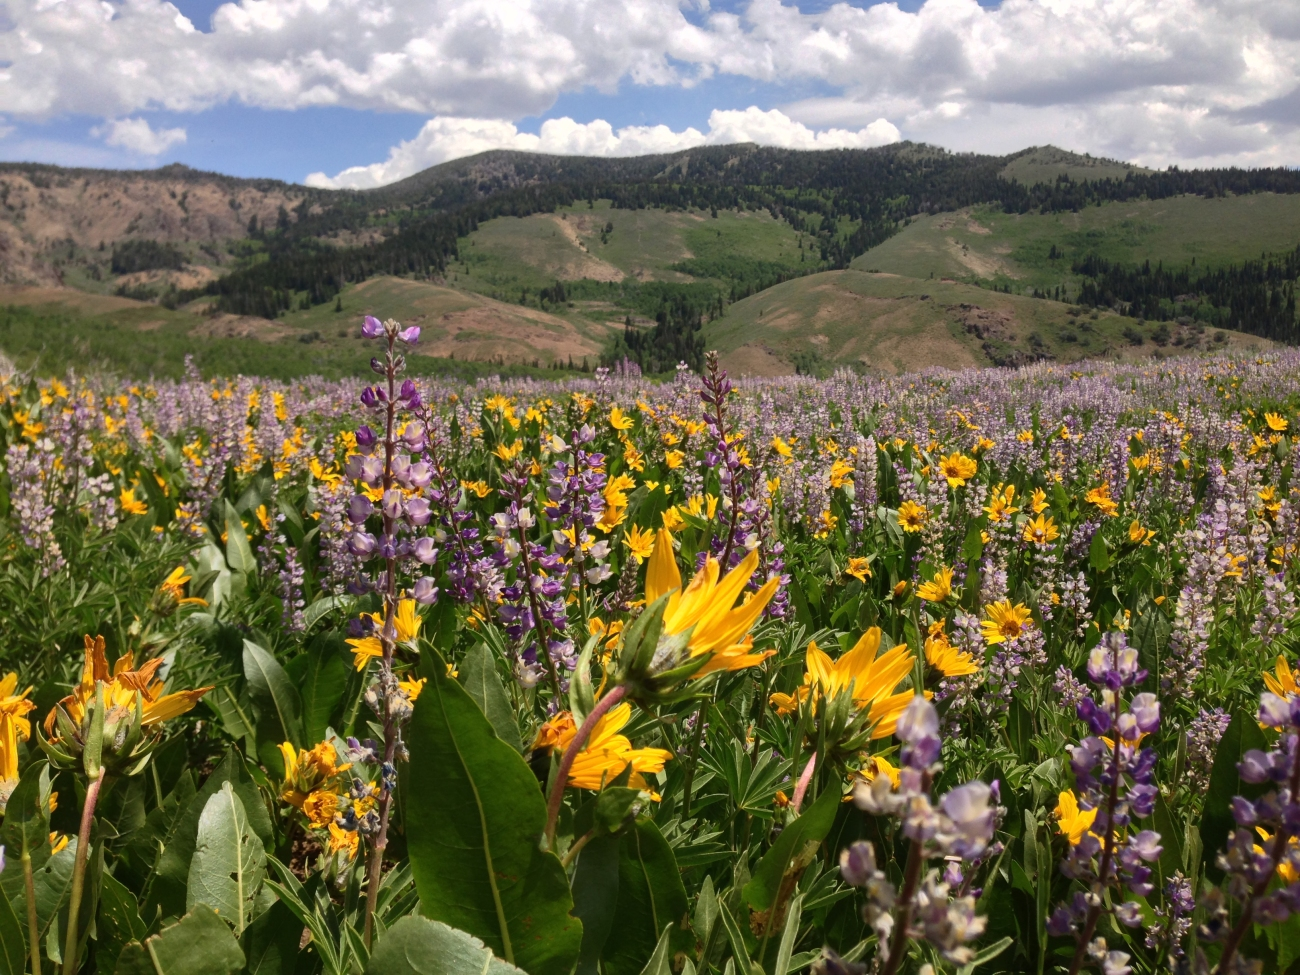 2014-06-24_12_17_46_Wildflowers_east_of_Elko_County_Route_748_(Charleston-Jarbidge_Road)_along_the_border_of_the_Mountain_City_and_Jarbidge_ranger_districts_in_Copper_Basin,_Nevada